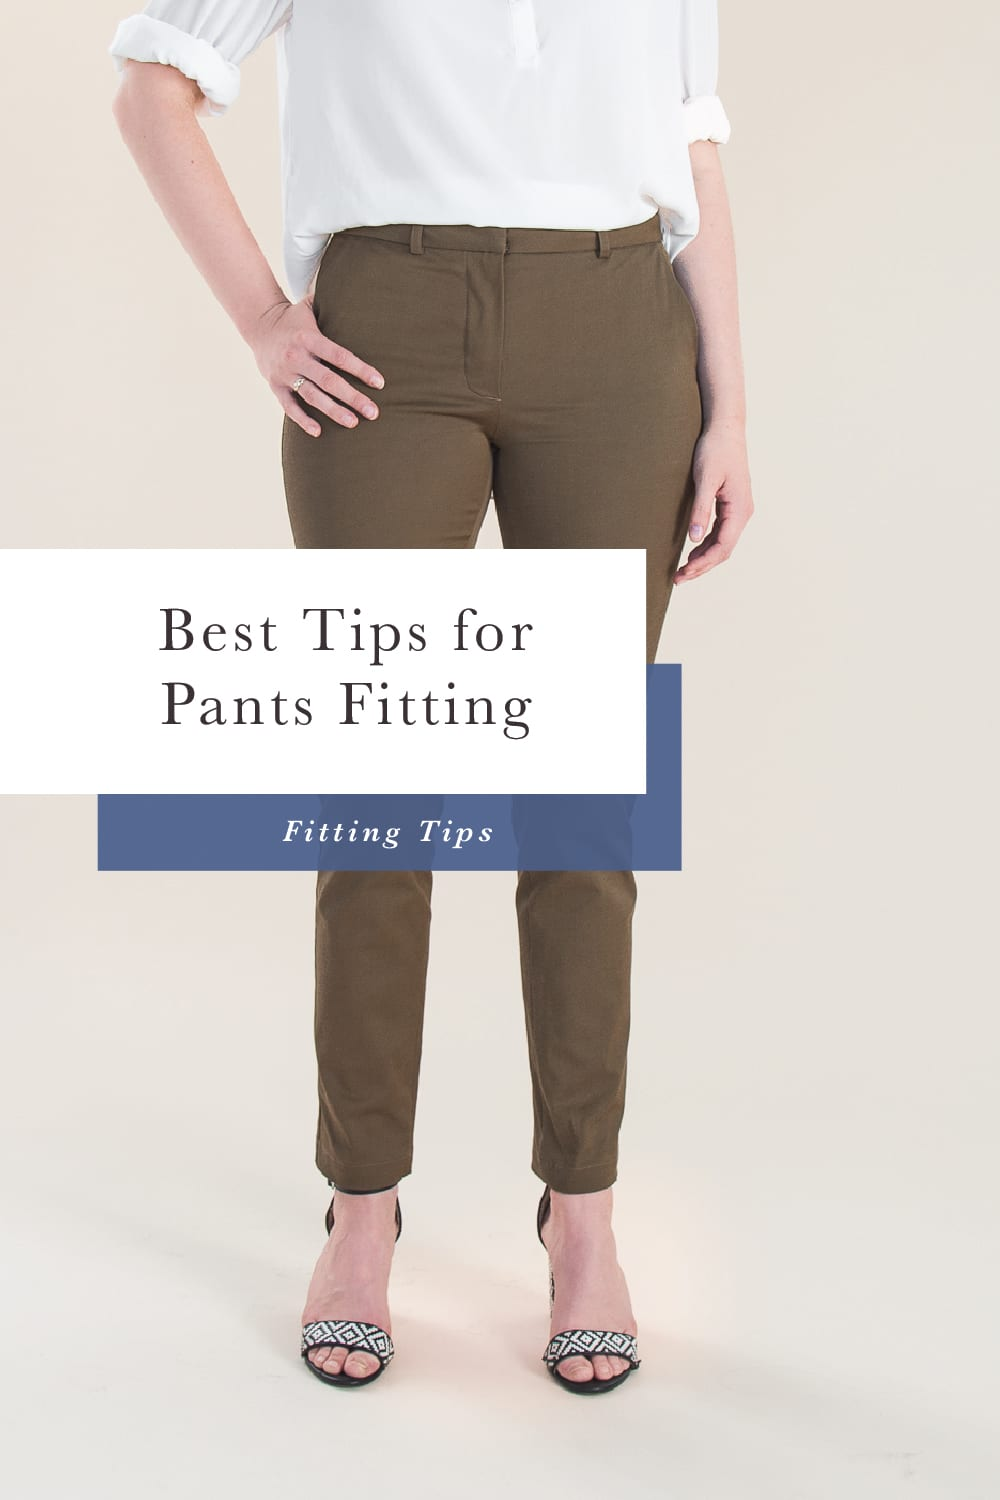 PAPER-BAG TROUSER WITH PATCH POCKETS | KIM DAVE | Trousers pattern ... | 1500x1000